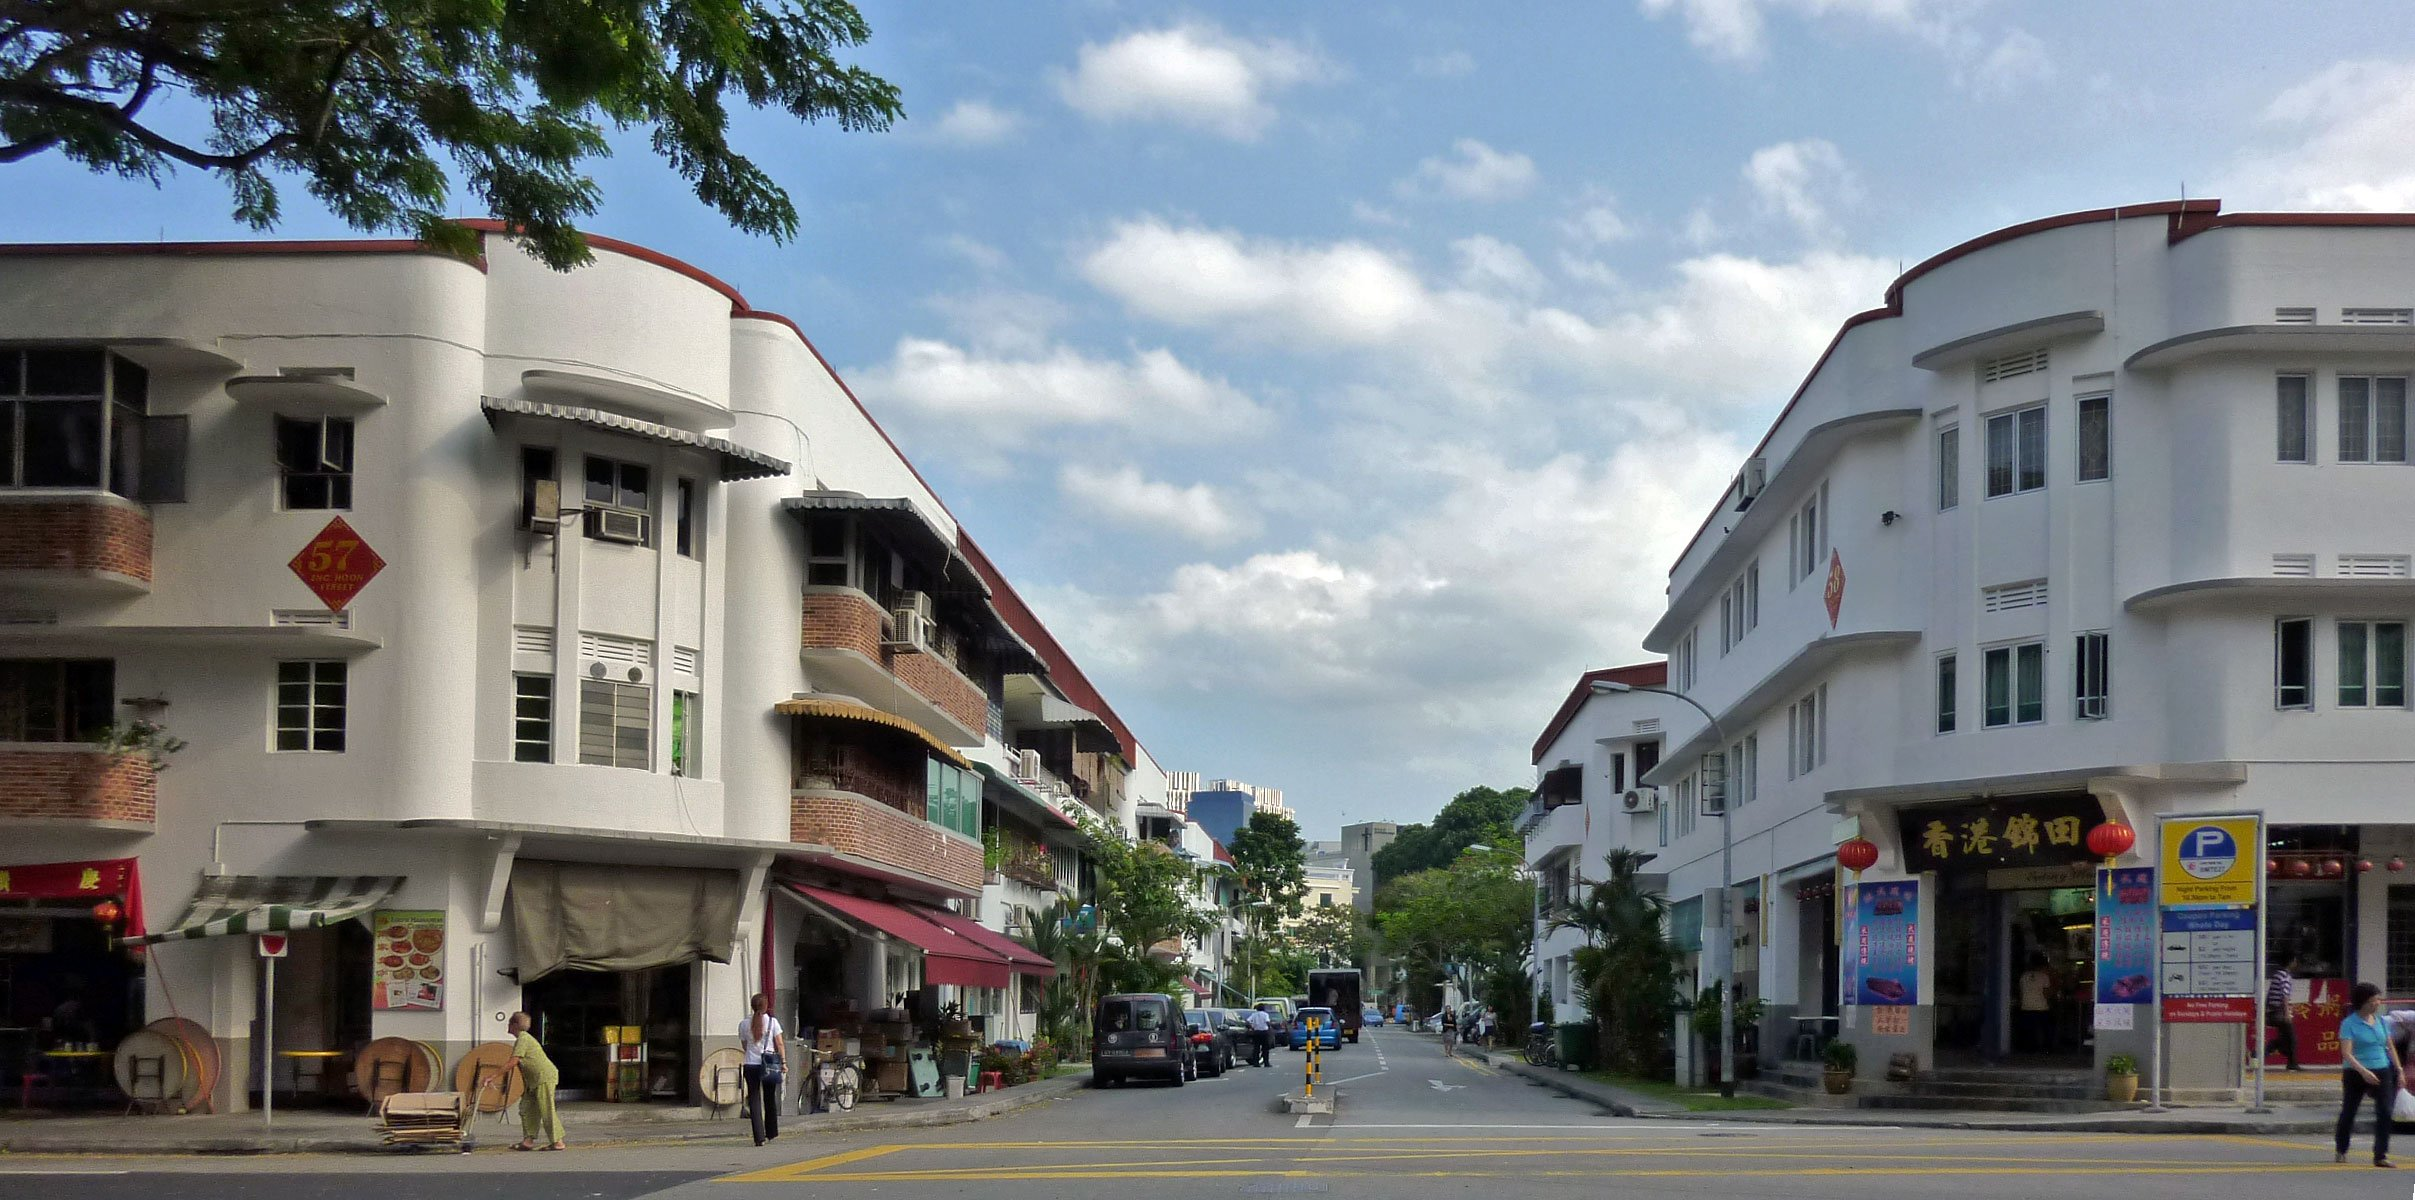 The most popular SIT flats today are located in Tiong Bahru